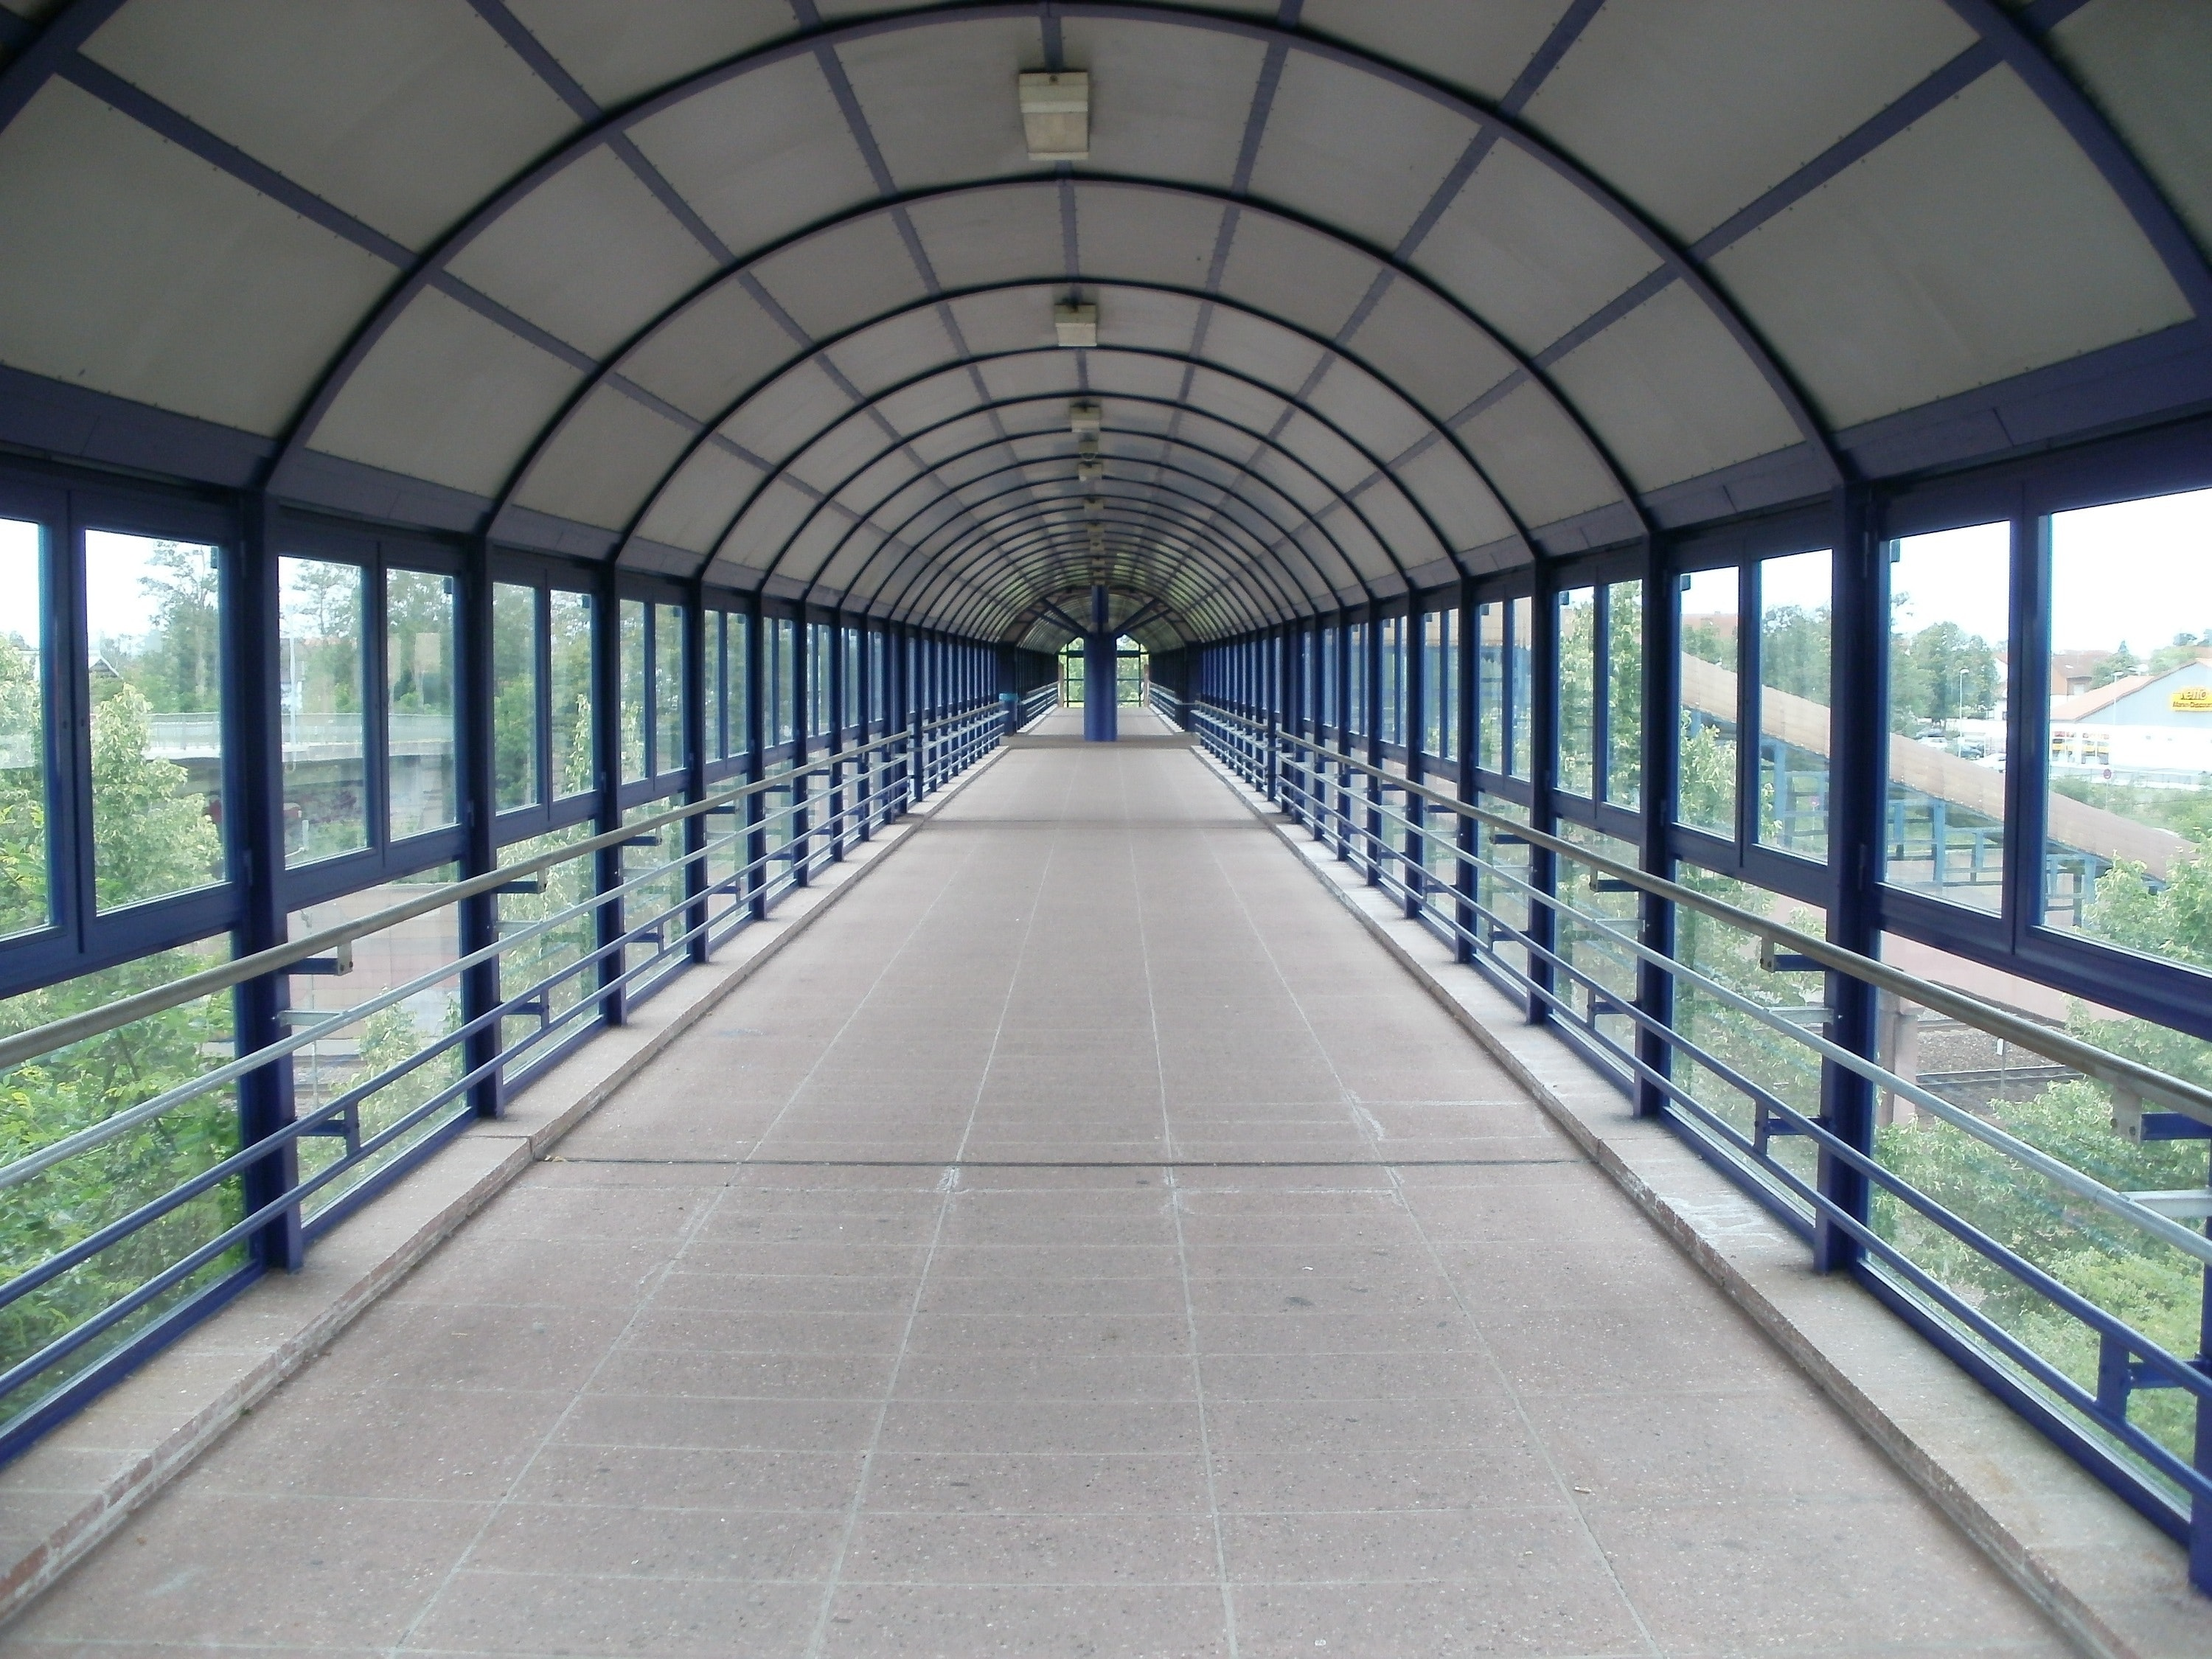 View of Greenhouse, Architecture, Bridge, Crossing, Passage, HQ Photo